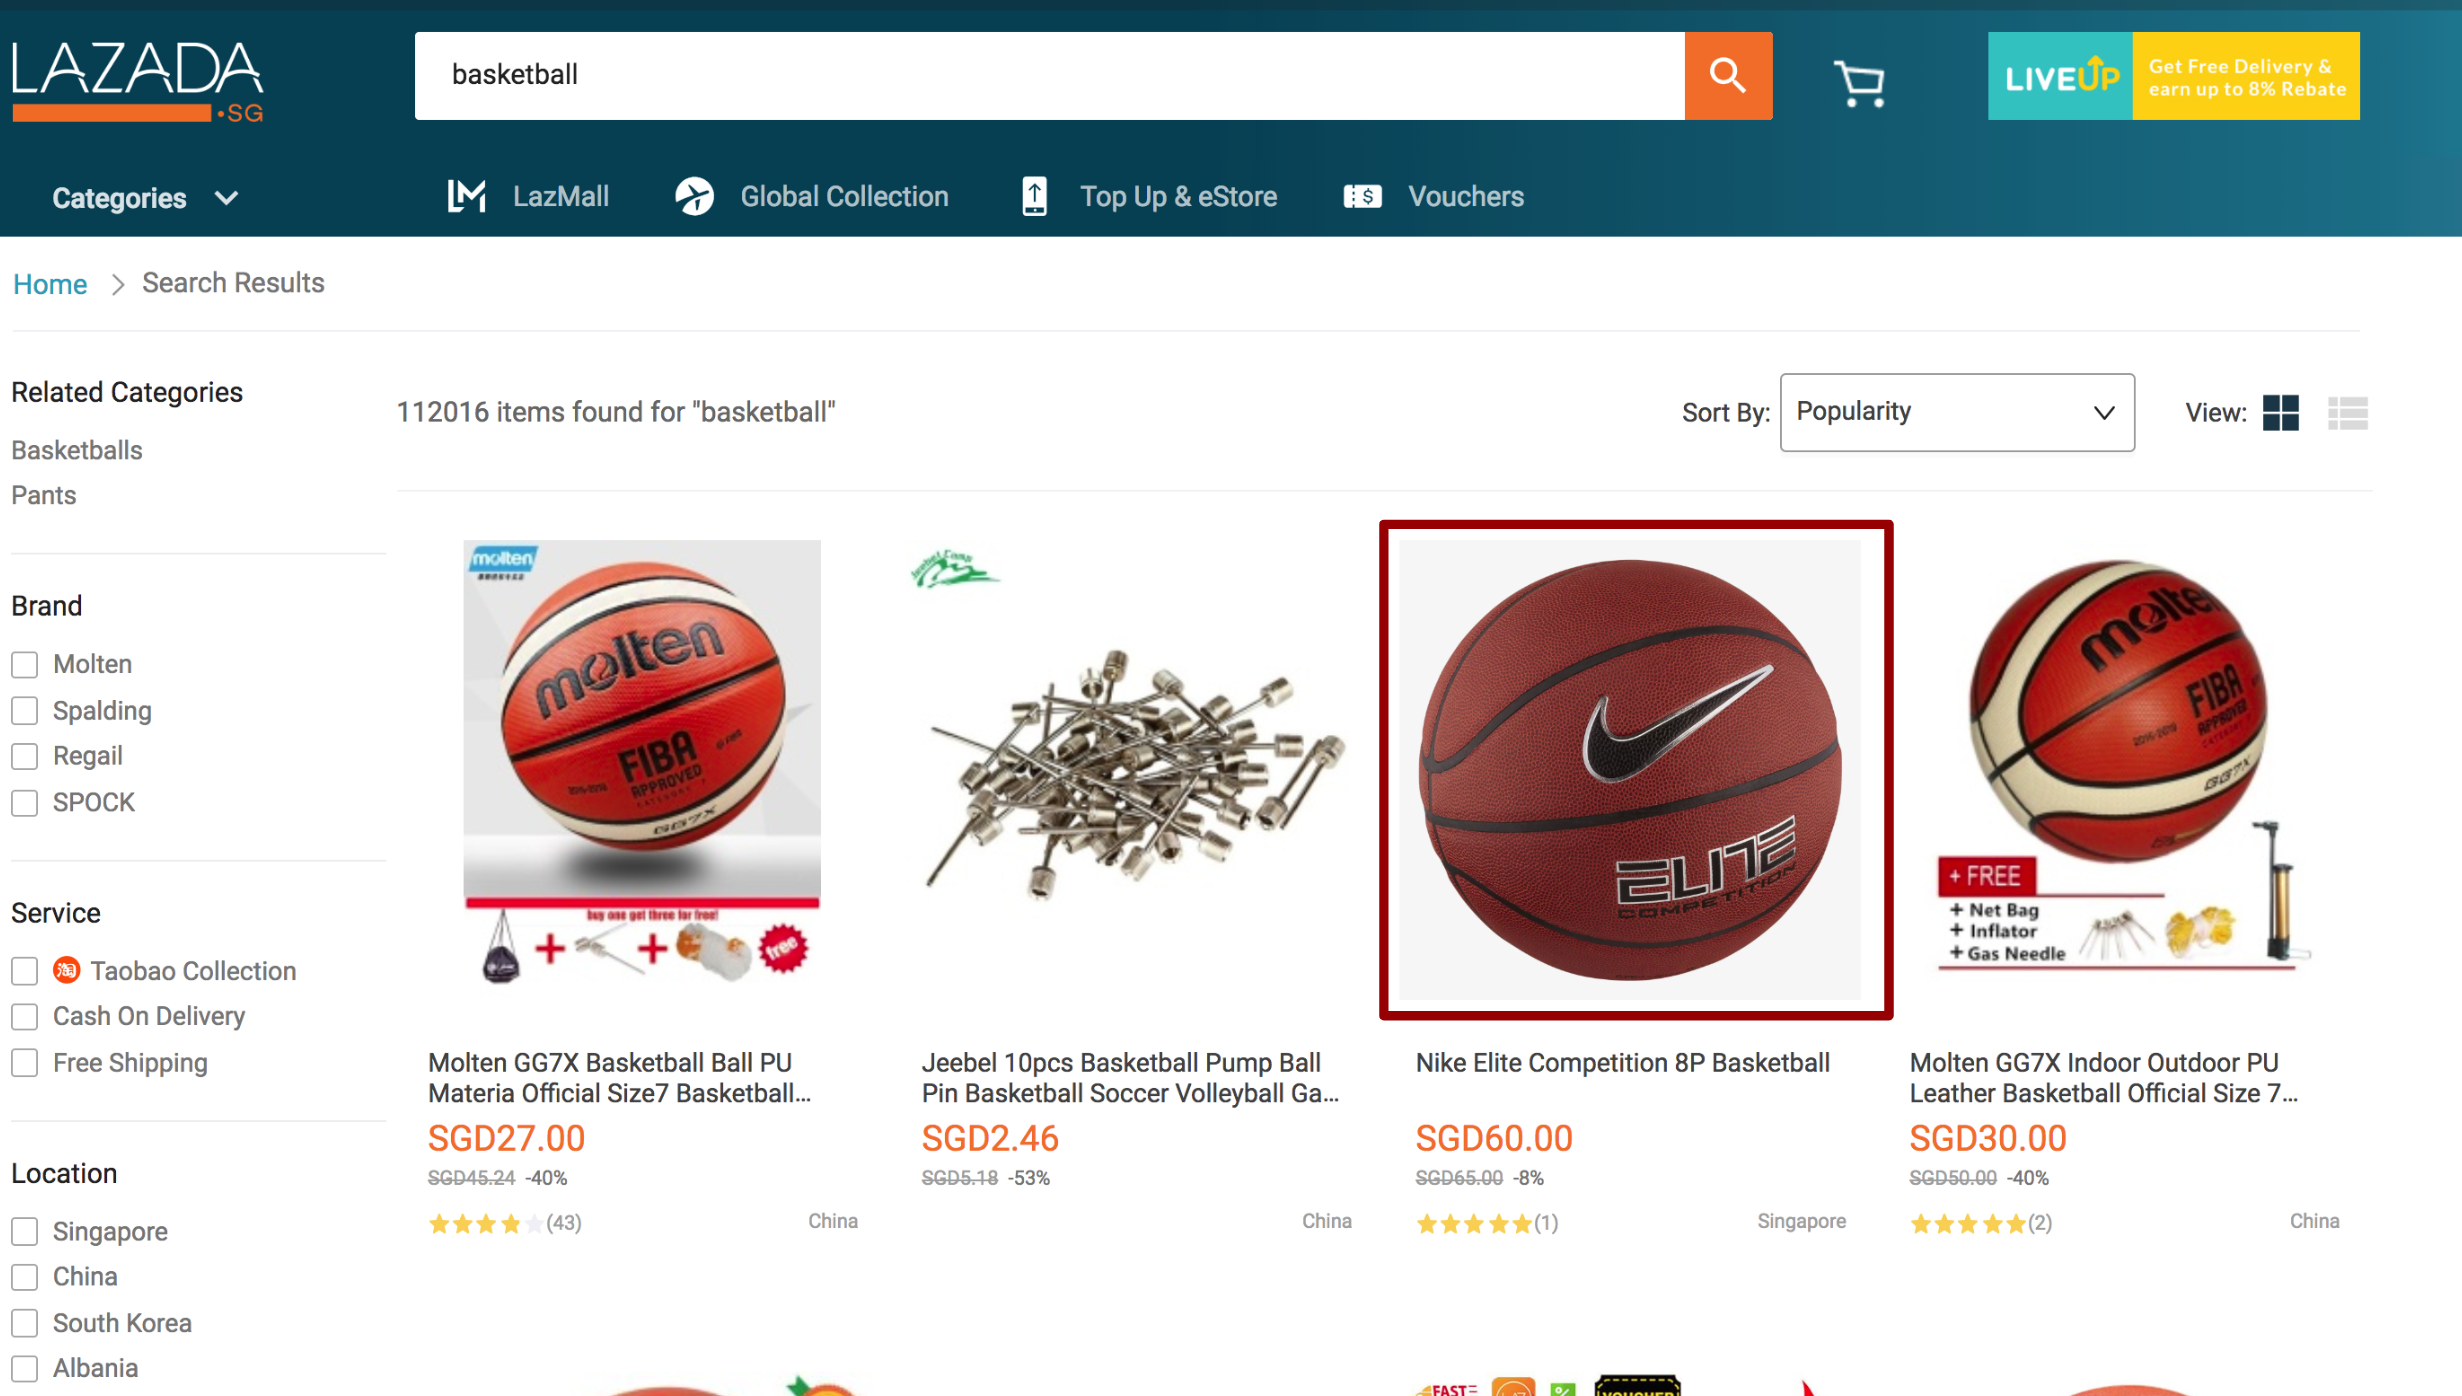 Product Image in Lazada Search Results View